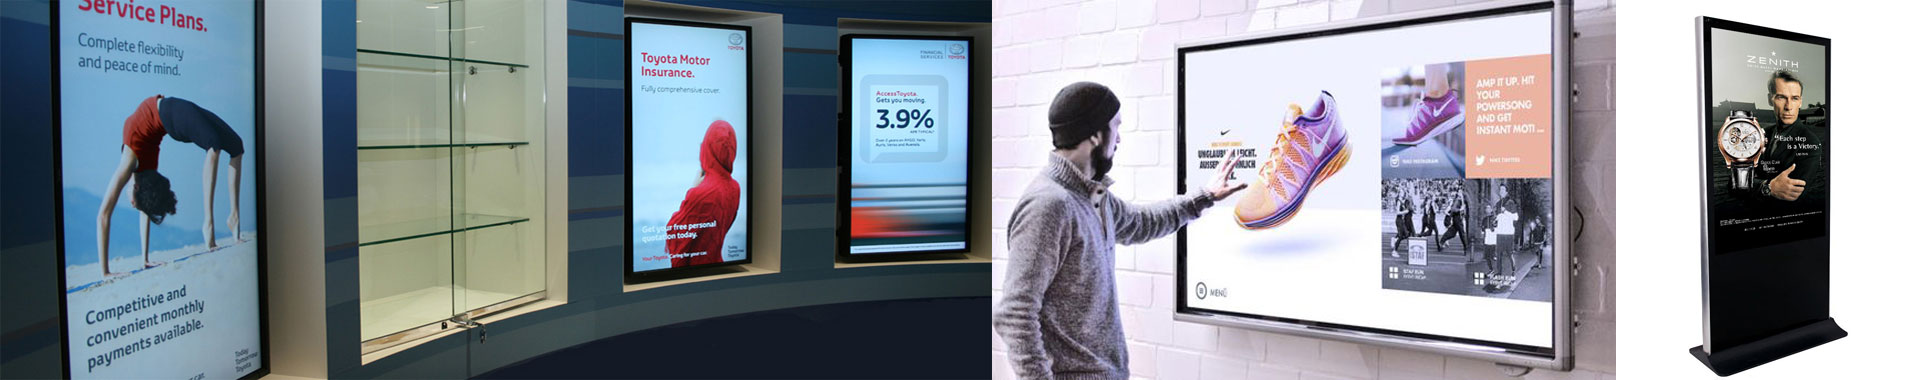 digital signage for retail in kenya